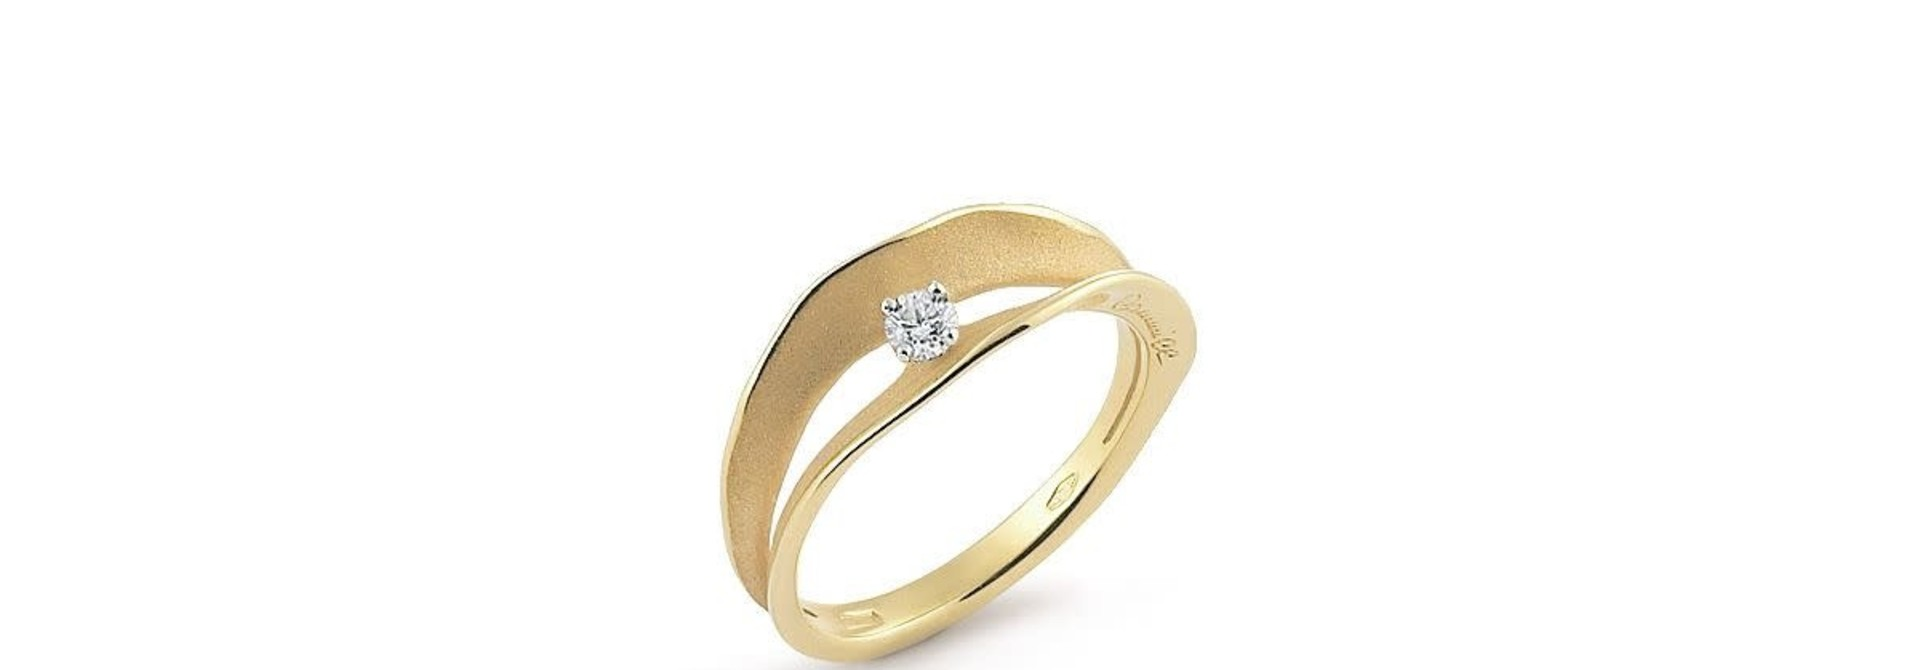 Dune Assolo Collection Ring, 18Kt Yellow Sunrise Gold With Diamonds